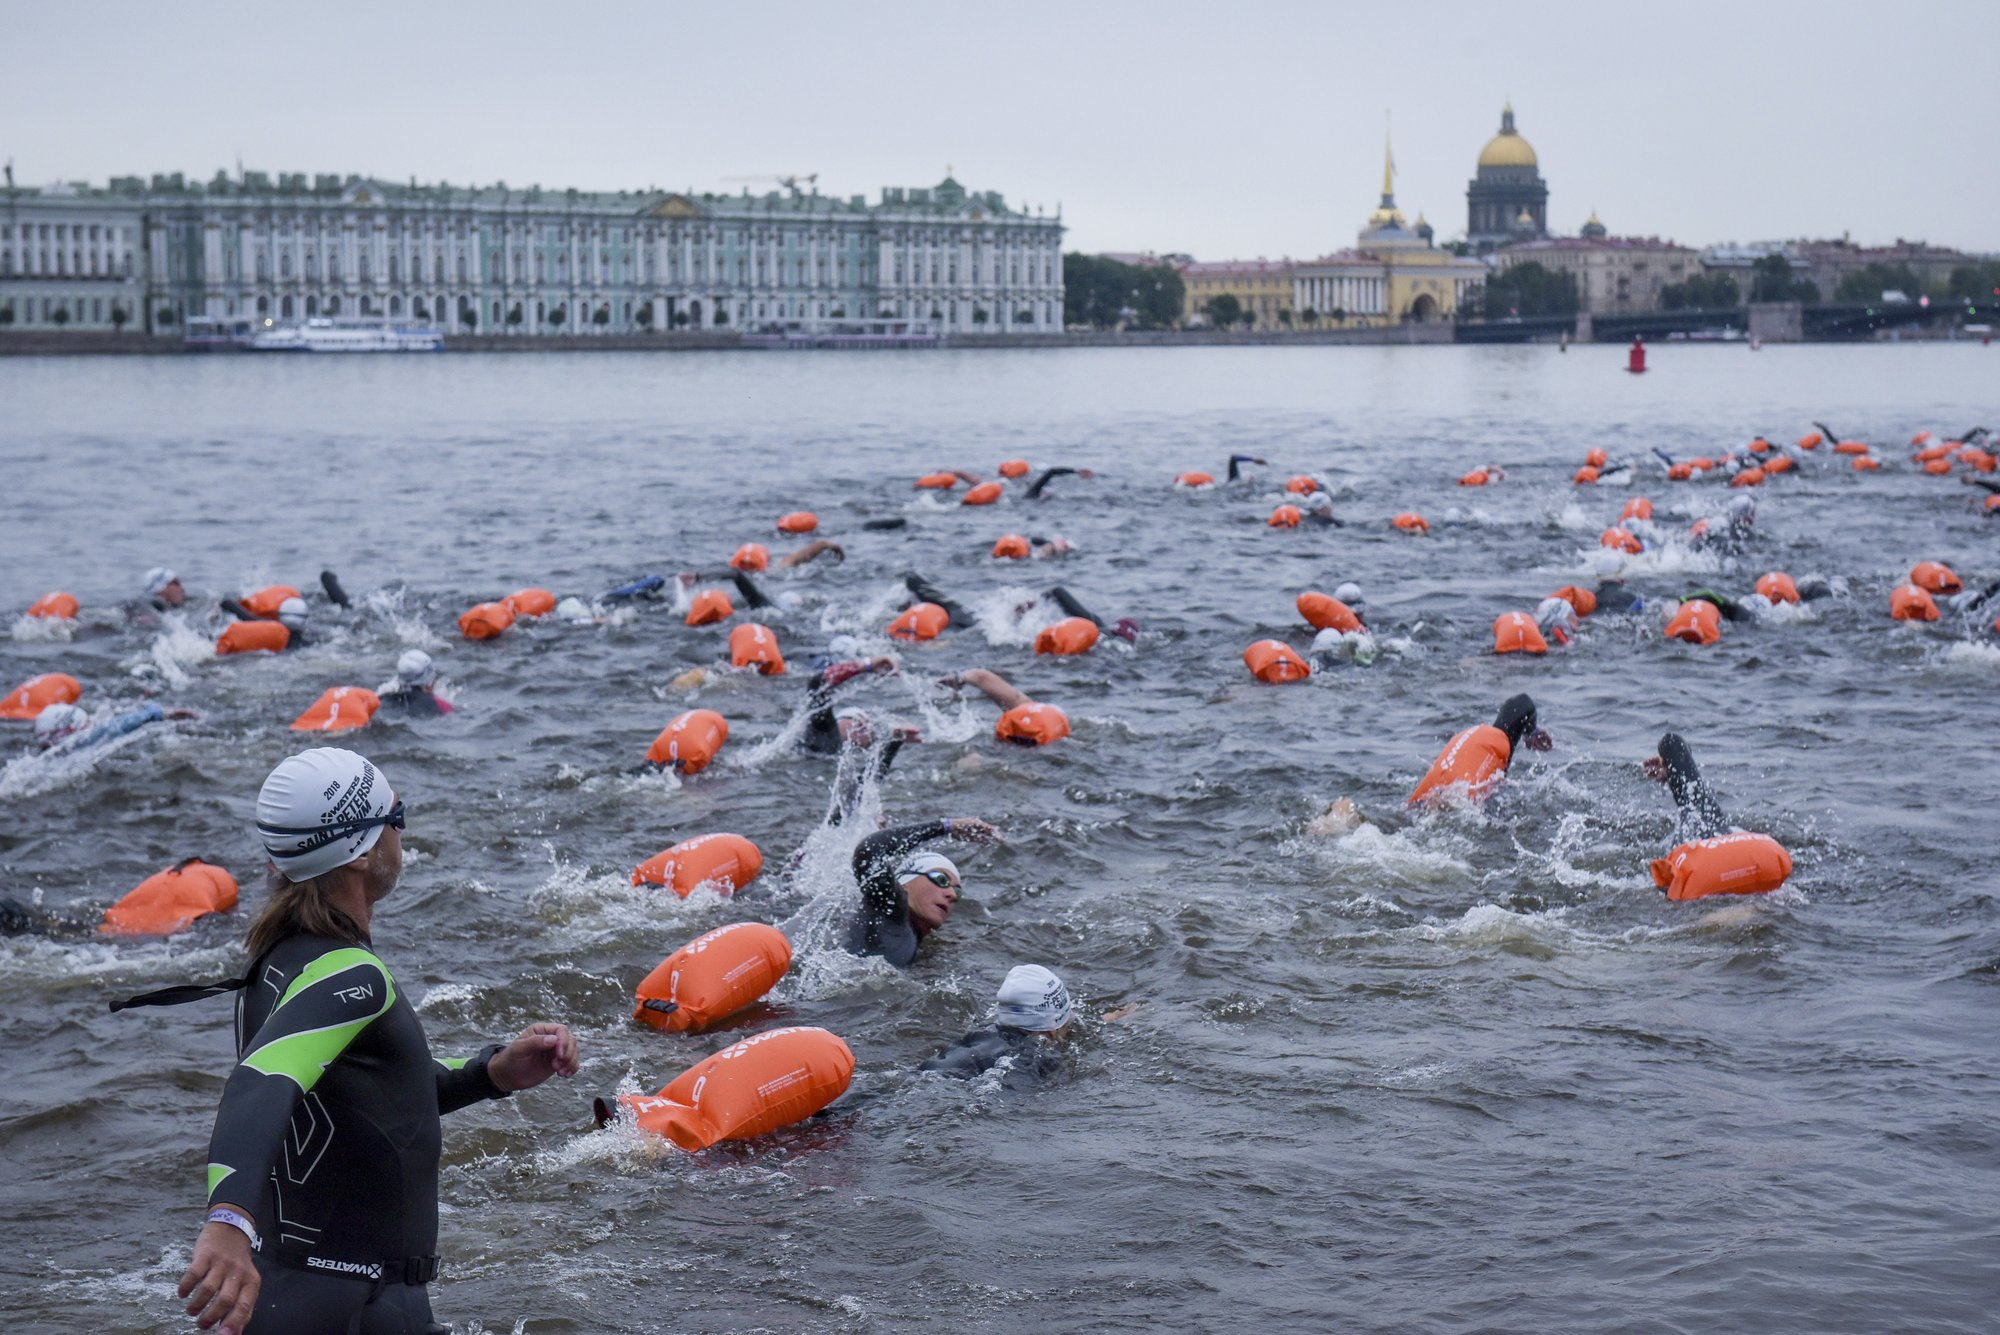 600 take the plunge in unusual St. Petersburg swim